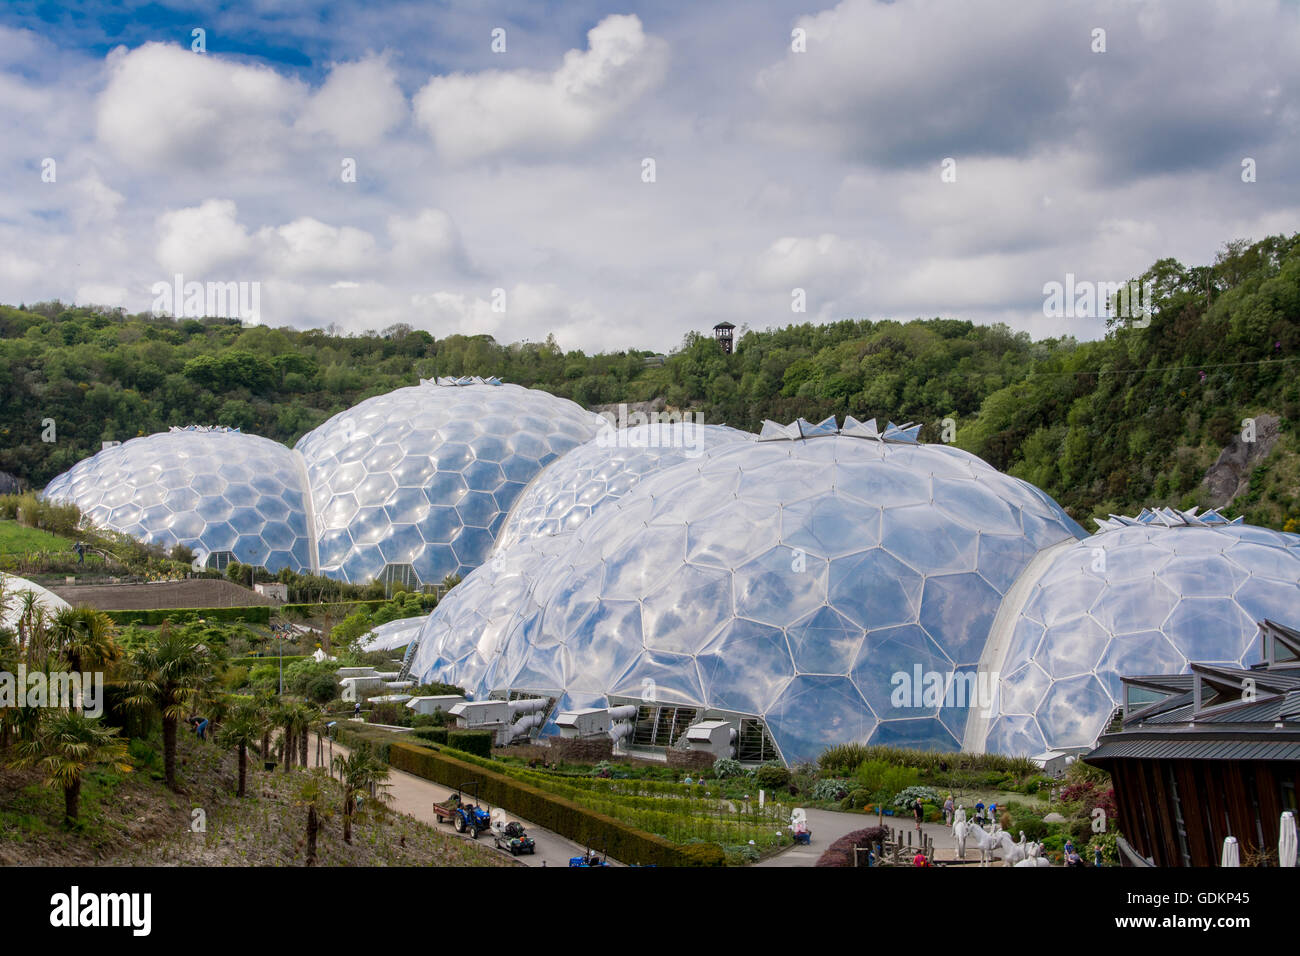 The Biomes at the Eden Project in Cornwall, UK - Stock Image